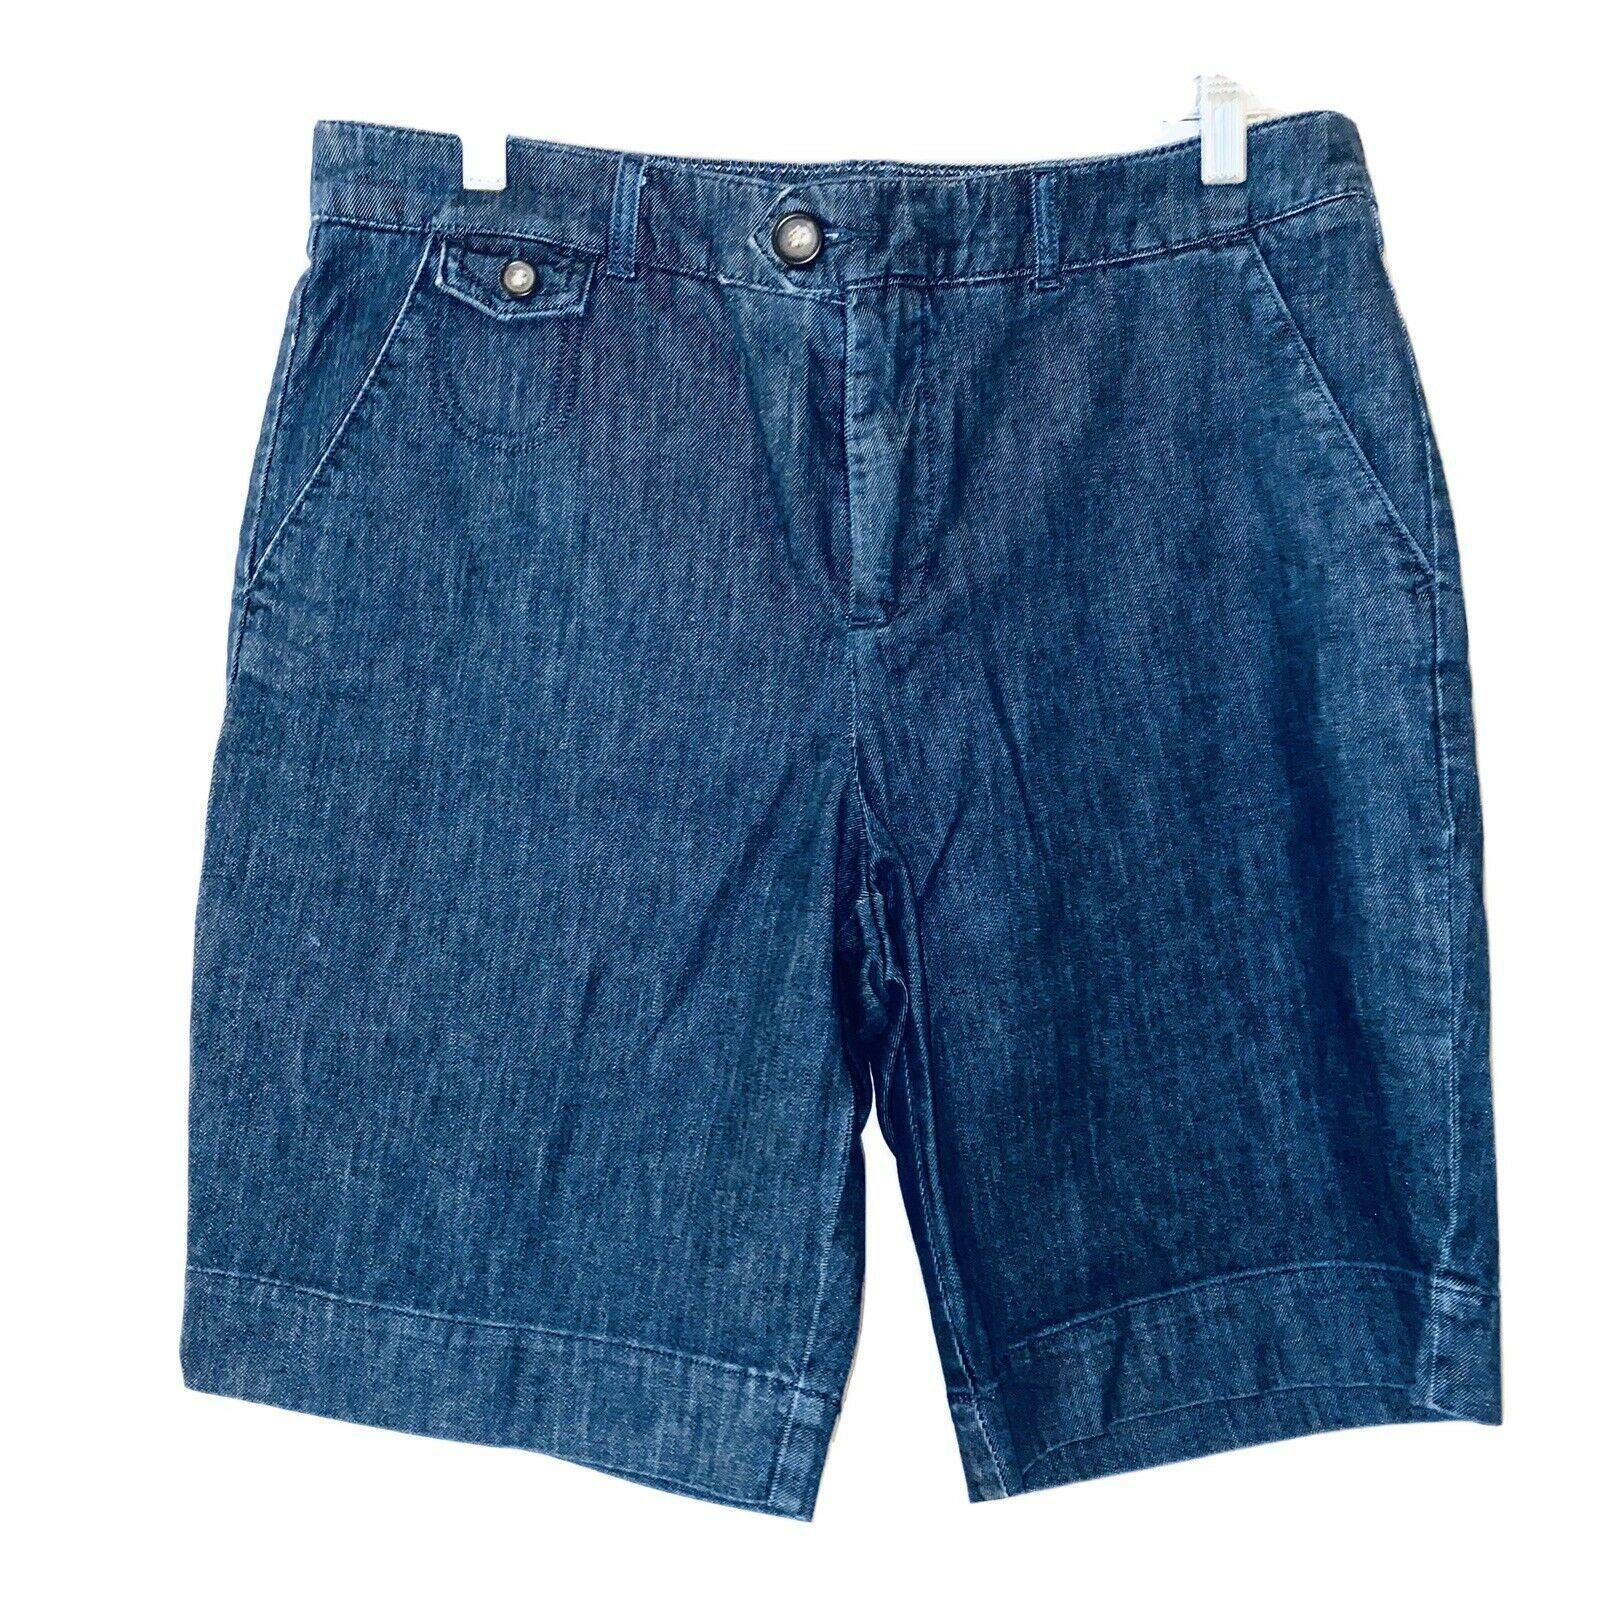 DOCKERS Denim chino bermuda shorts 12